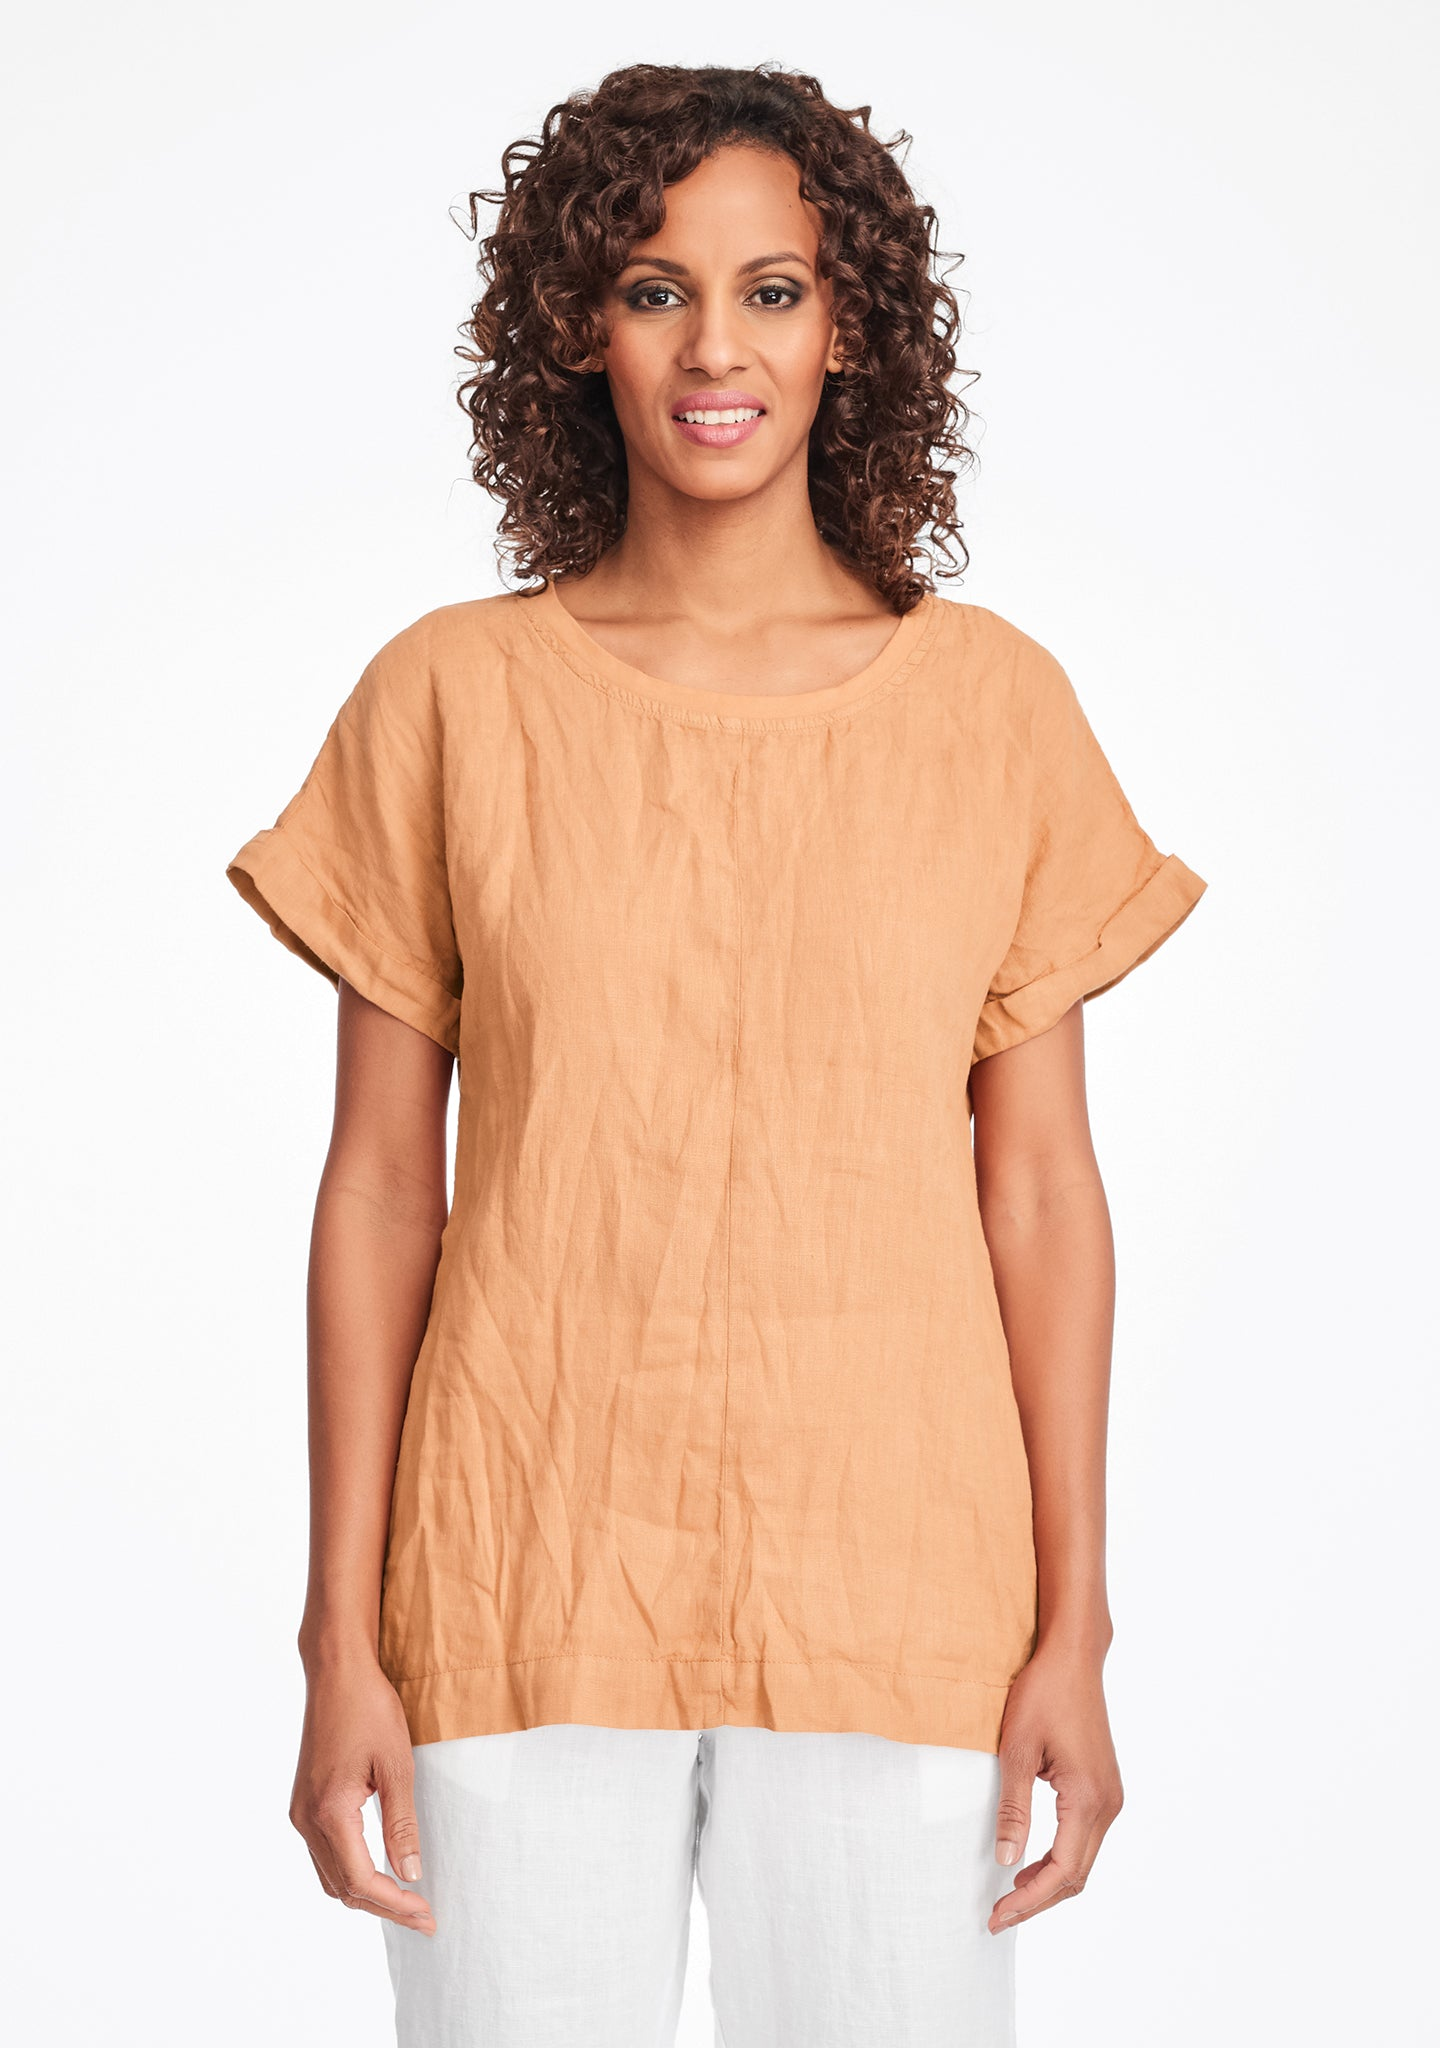 tee top linen t shirt orange